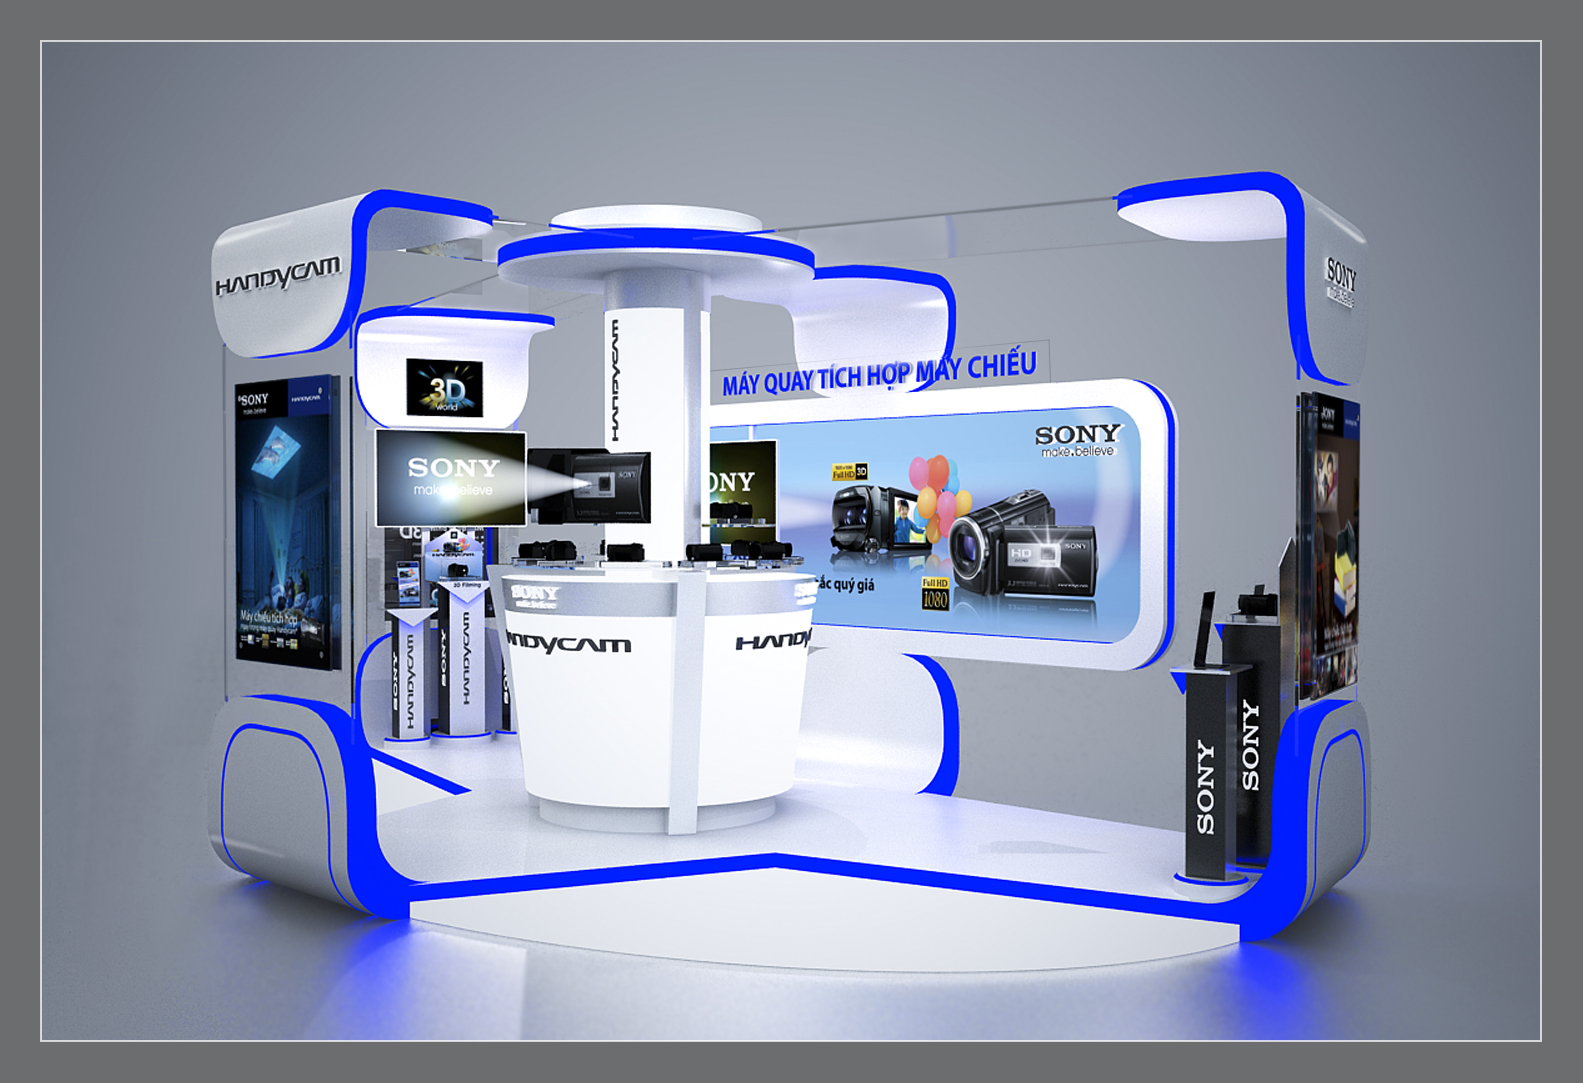 sony handycam roadshow booth by kevin pham at coroflot com